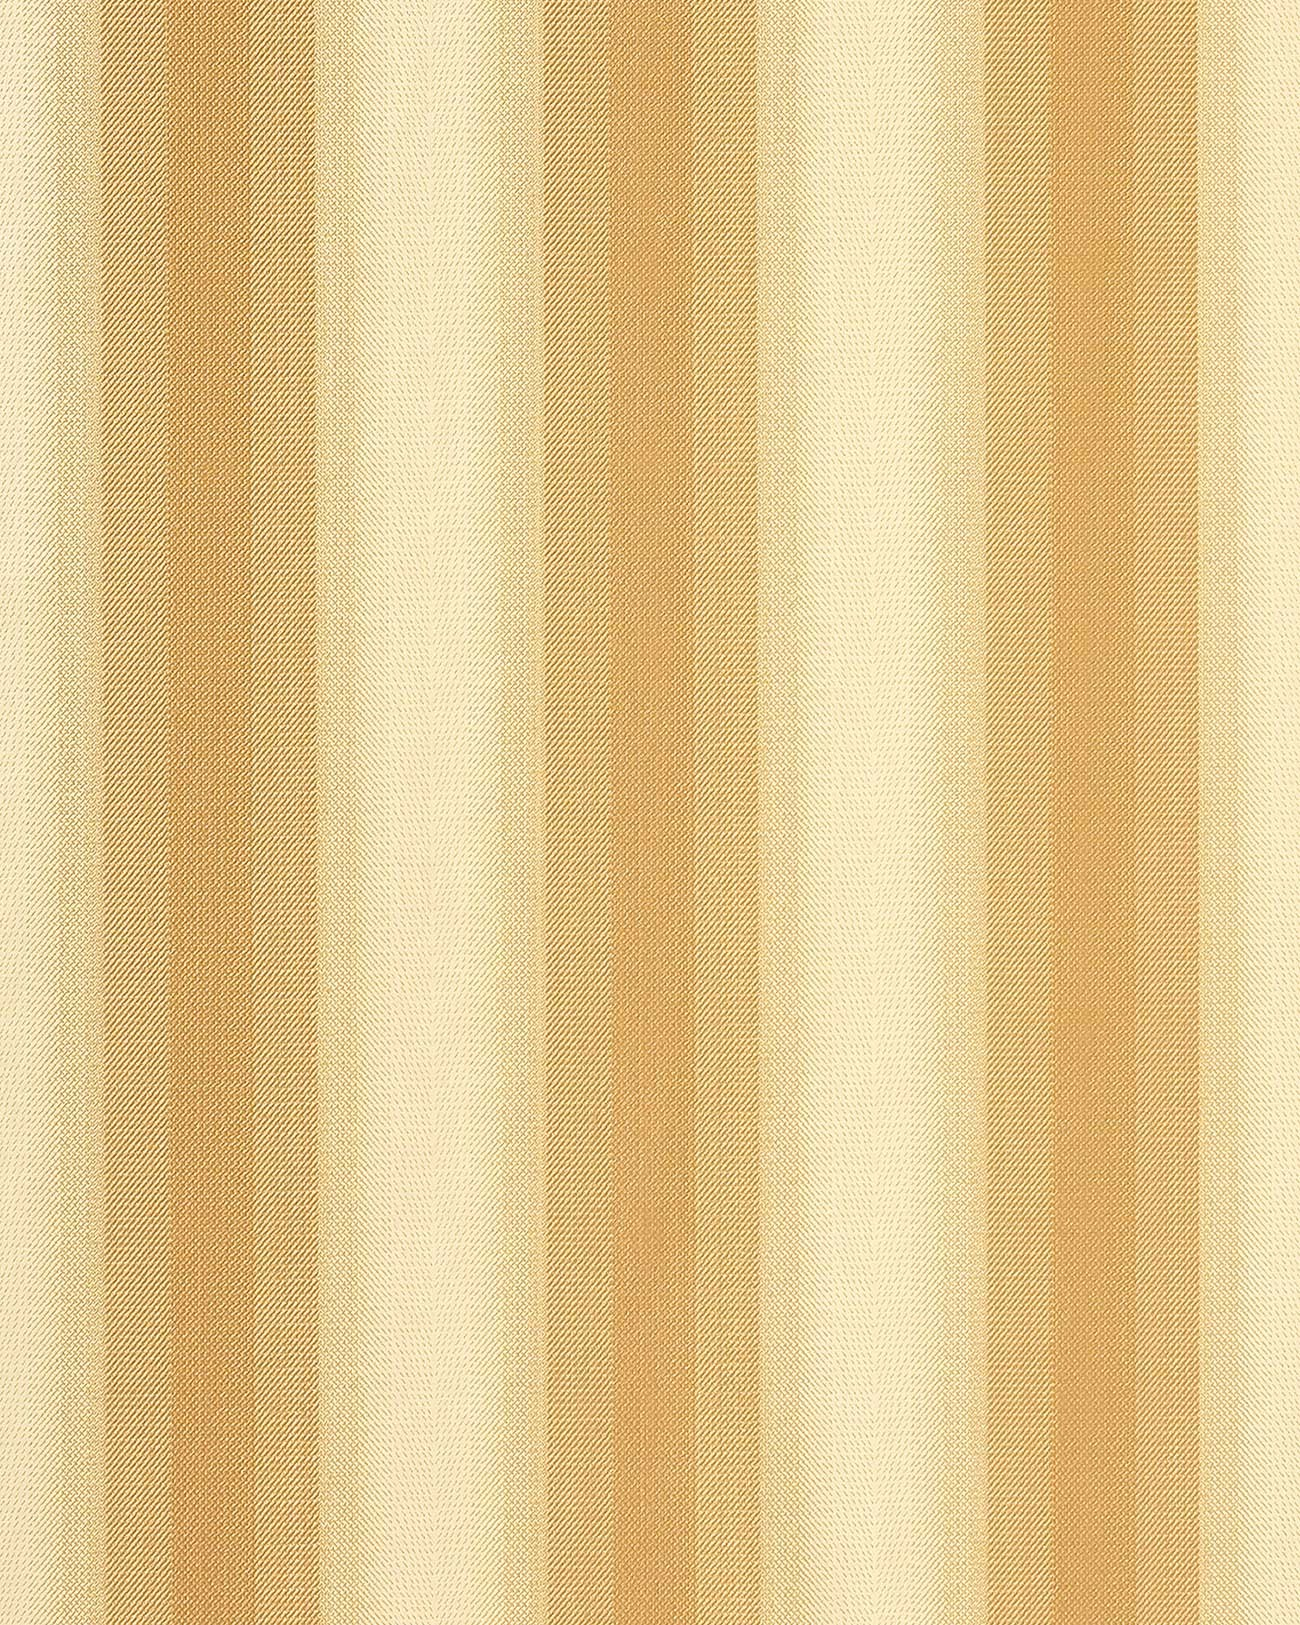 Original edem beige hell braun creme stylische design for Brown wallpaper for walls